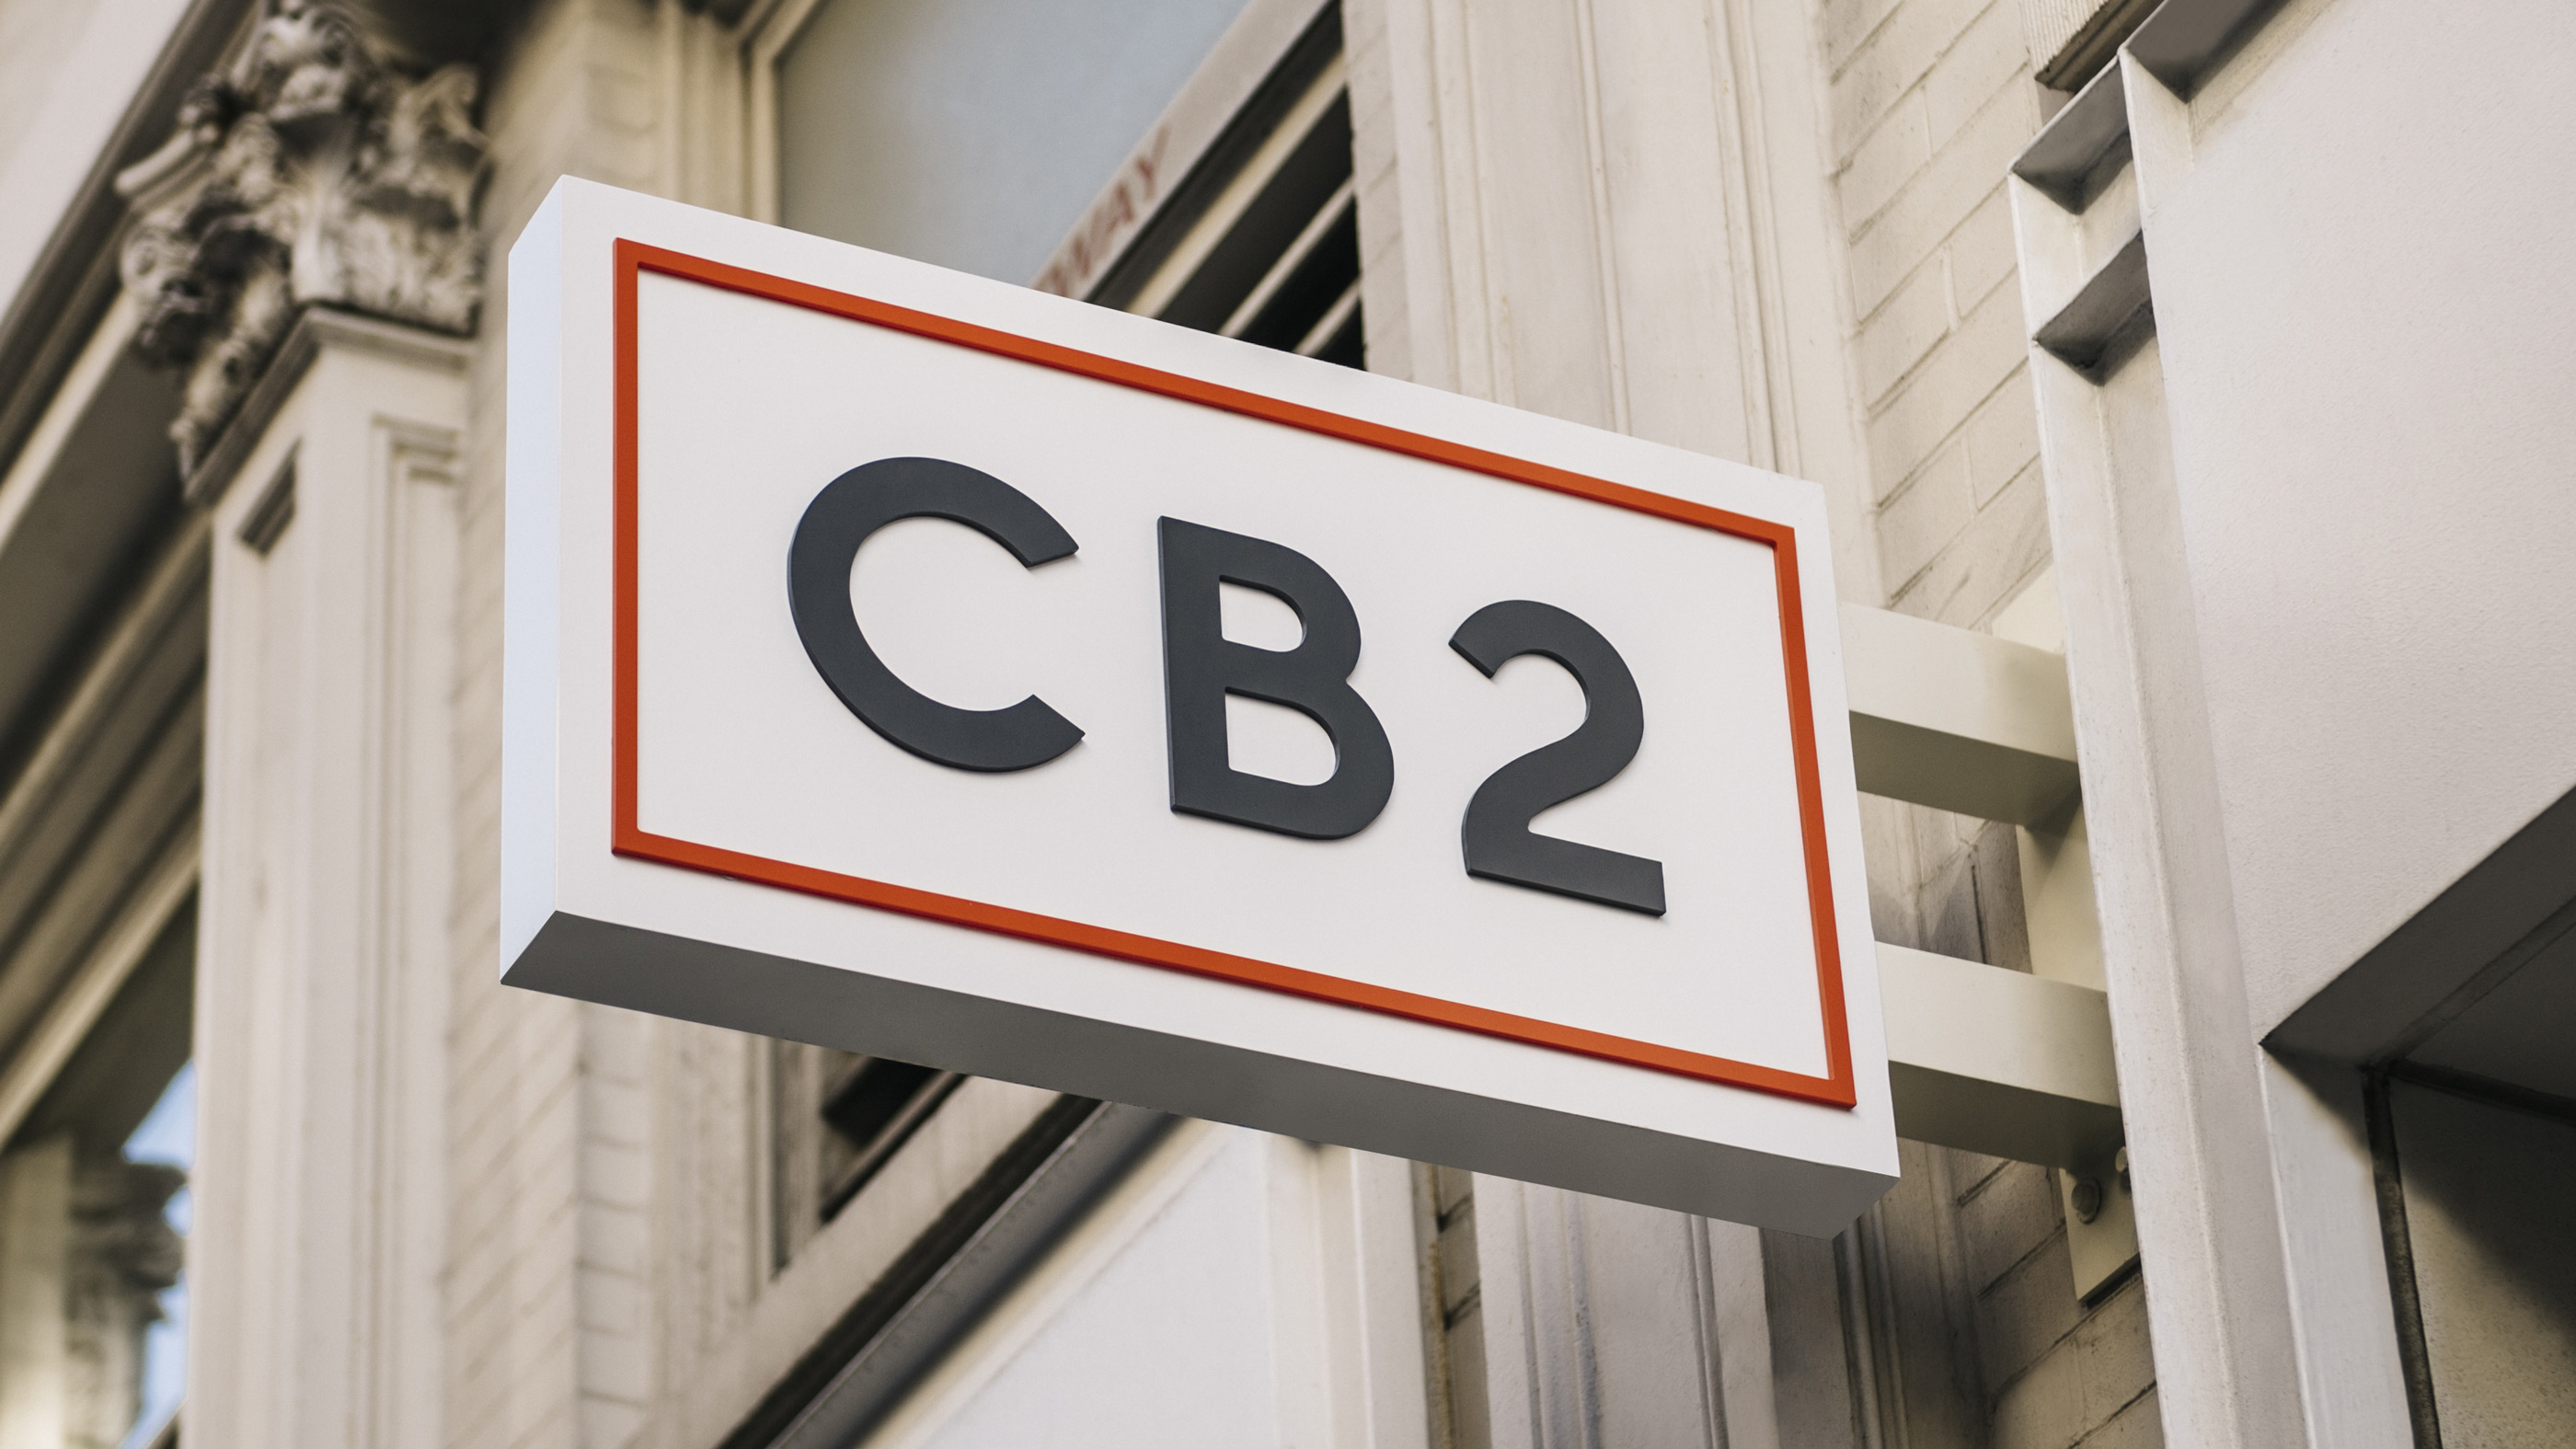 Mother Design — CB2 Identity.